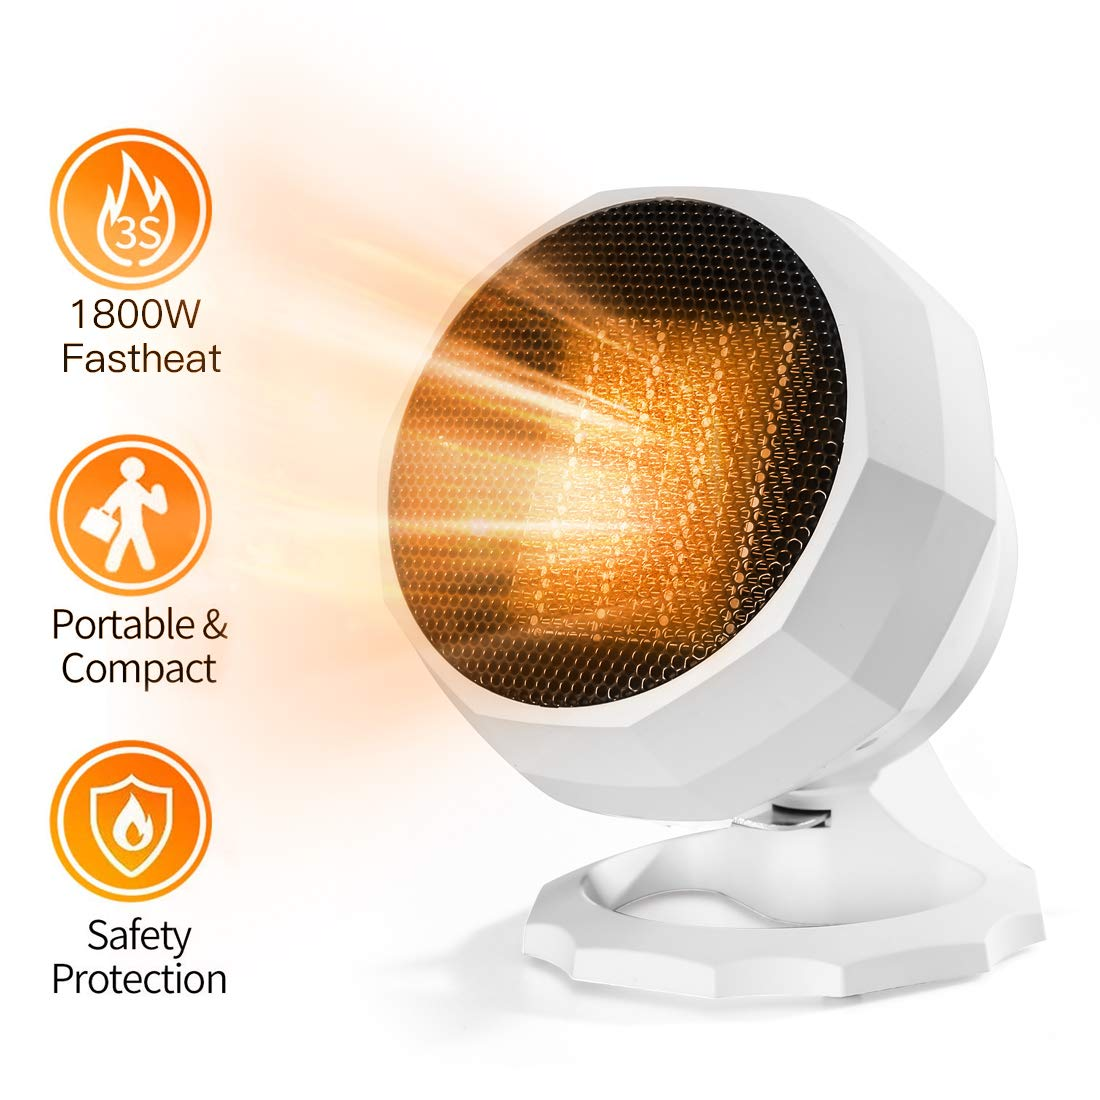 Space Heater,1800W 1000W Electric Portable Hater,Up and down 90 degree adjustable and 3 Adjustable Thermostat with Overheat Protection For Home Office Bedroom and Bathroom, Personal Desk Heater